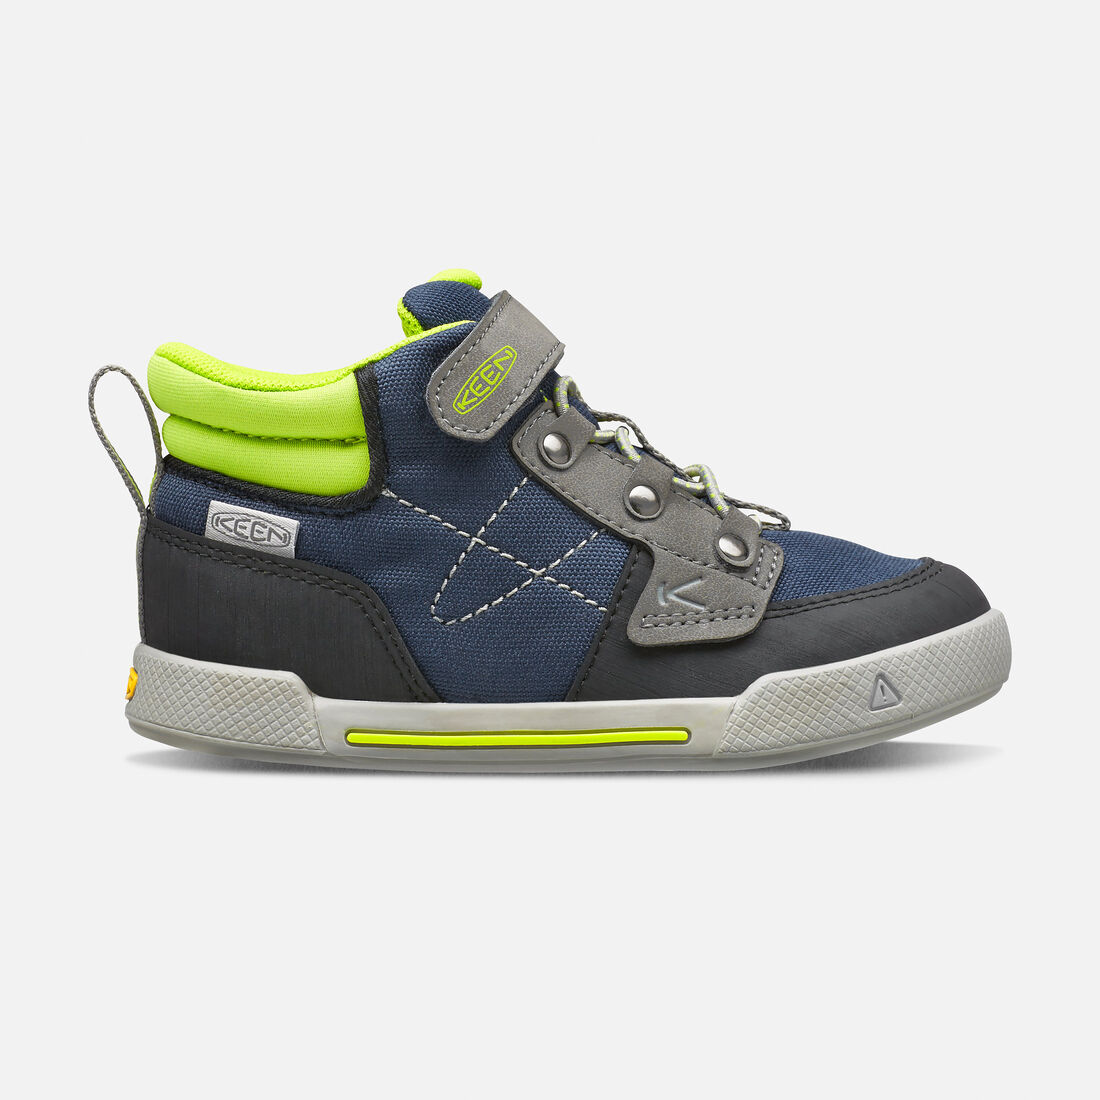 Little Kids' Encanto Wesley High Top in Dress Blues/Macaw - large view.